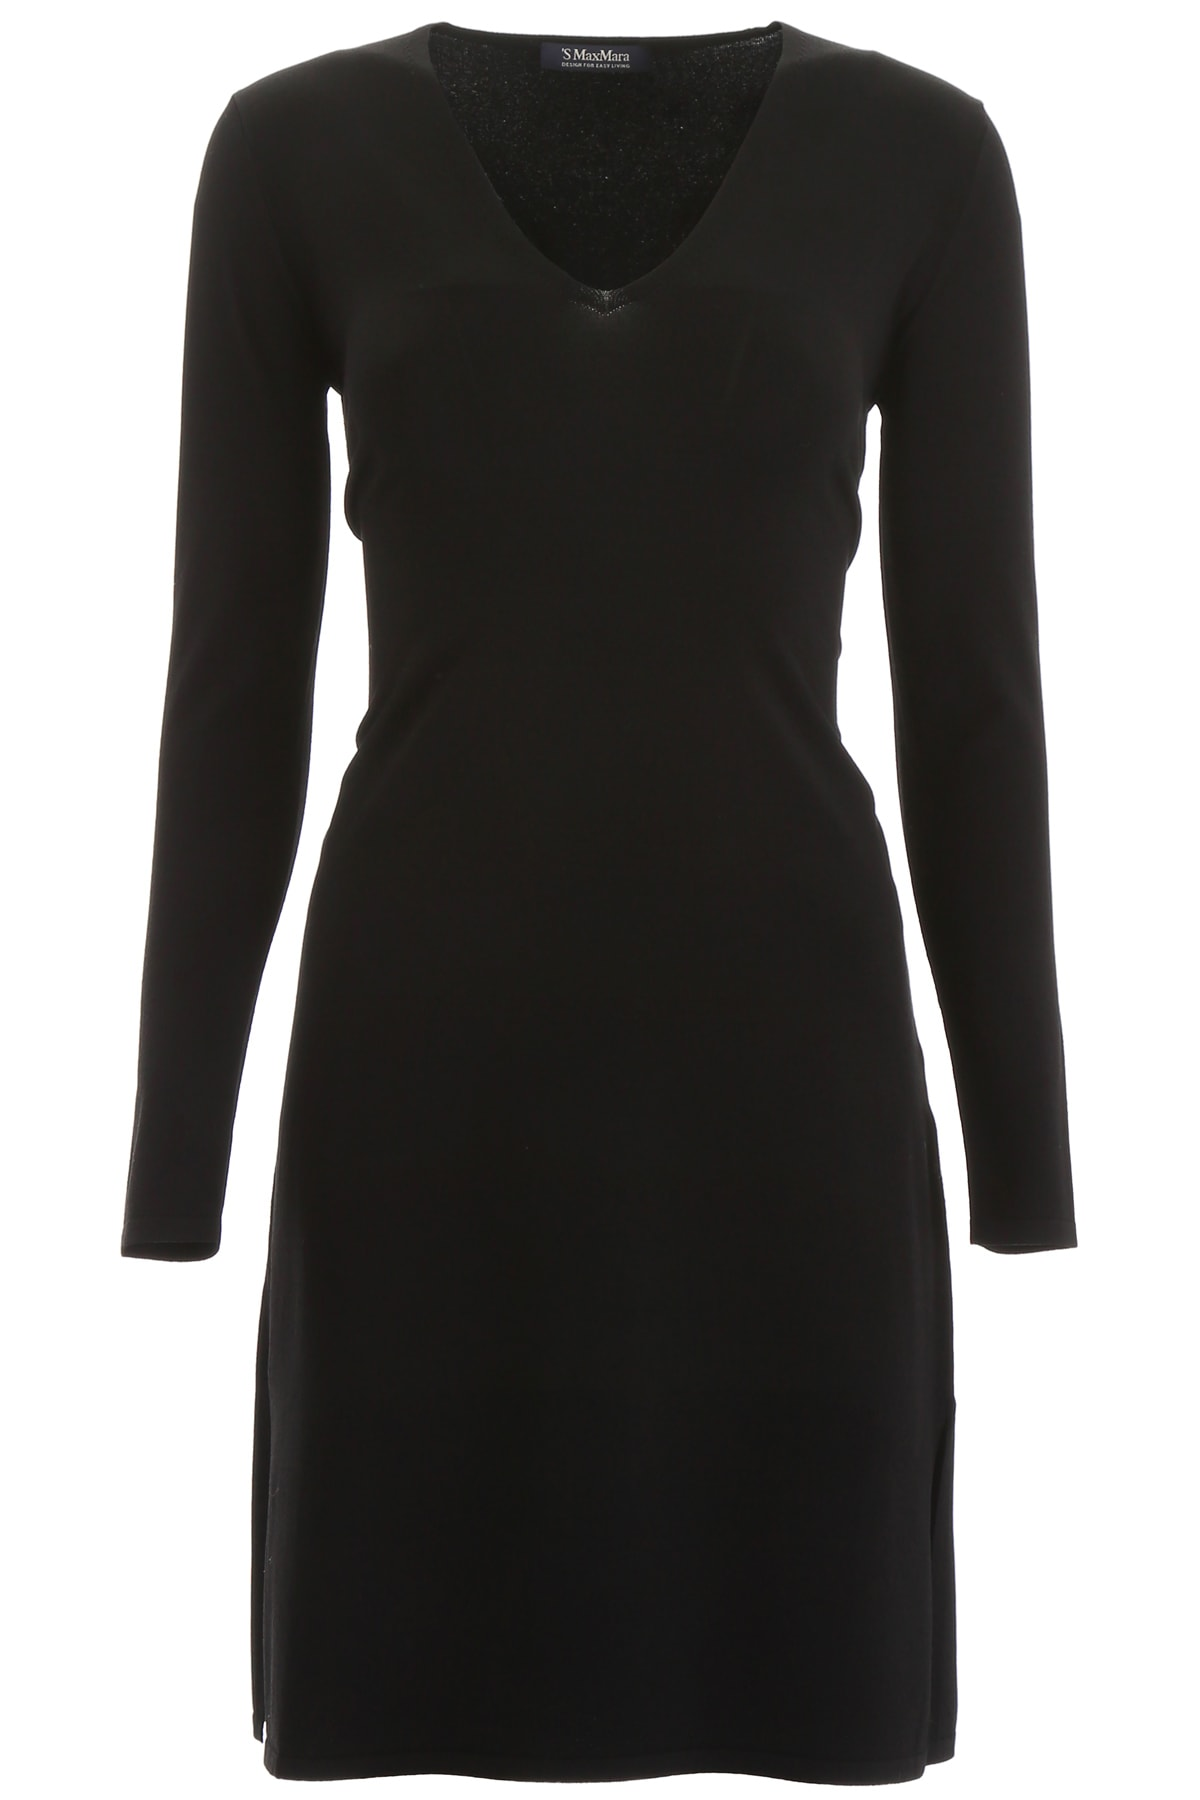 S Max Mara Here is The Cube Calenda Knit Dress